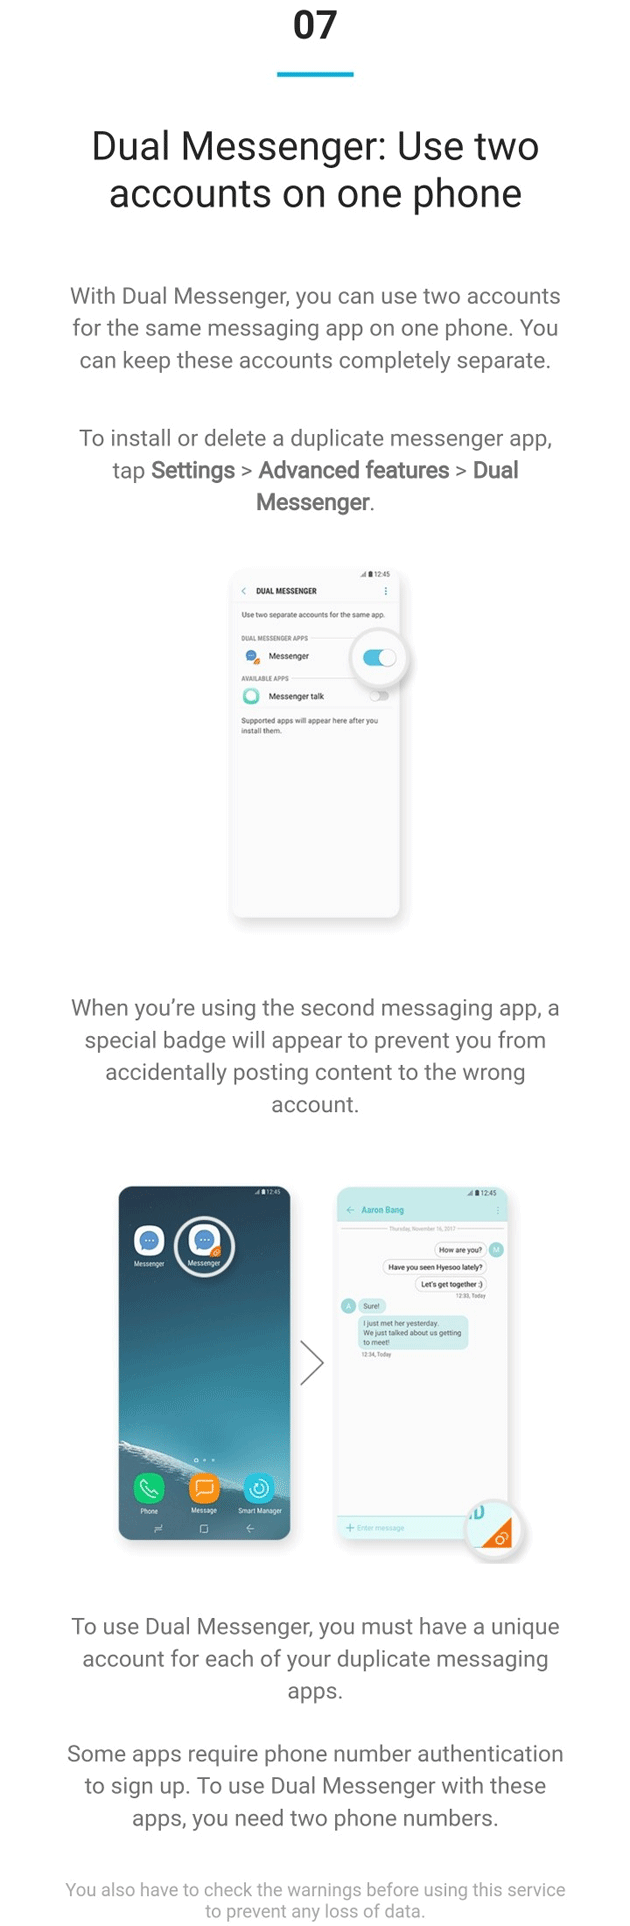 Samsung Experience 9.0 - Dual Messenger